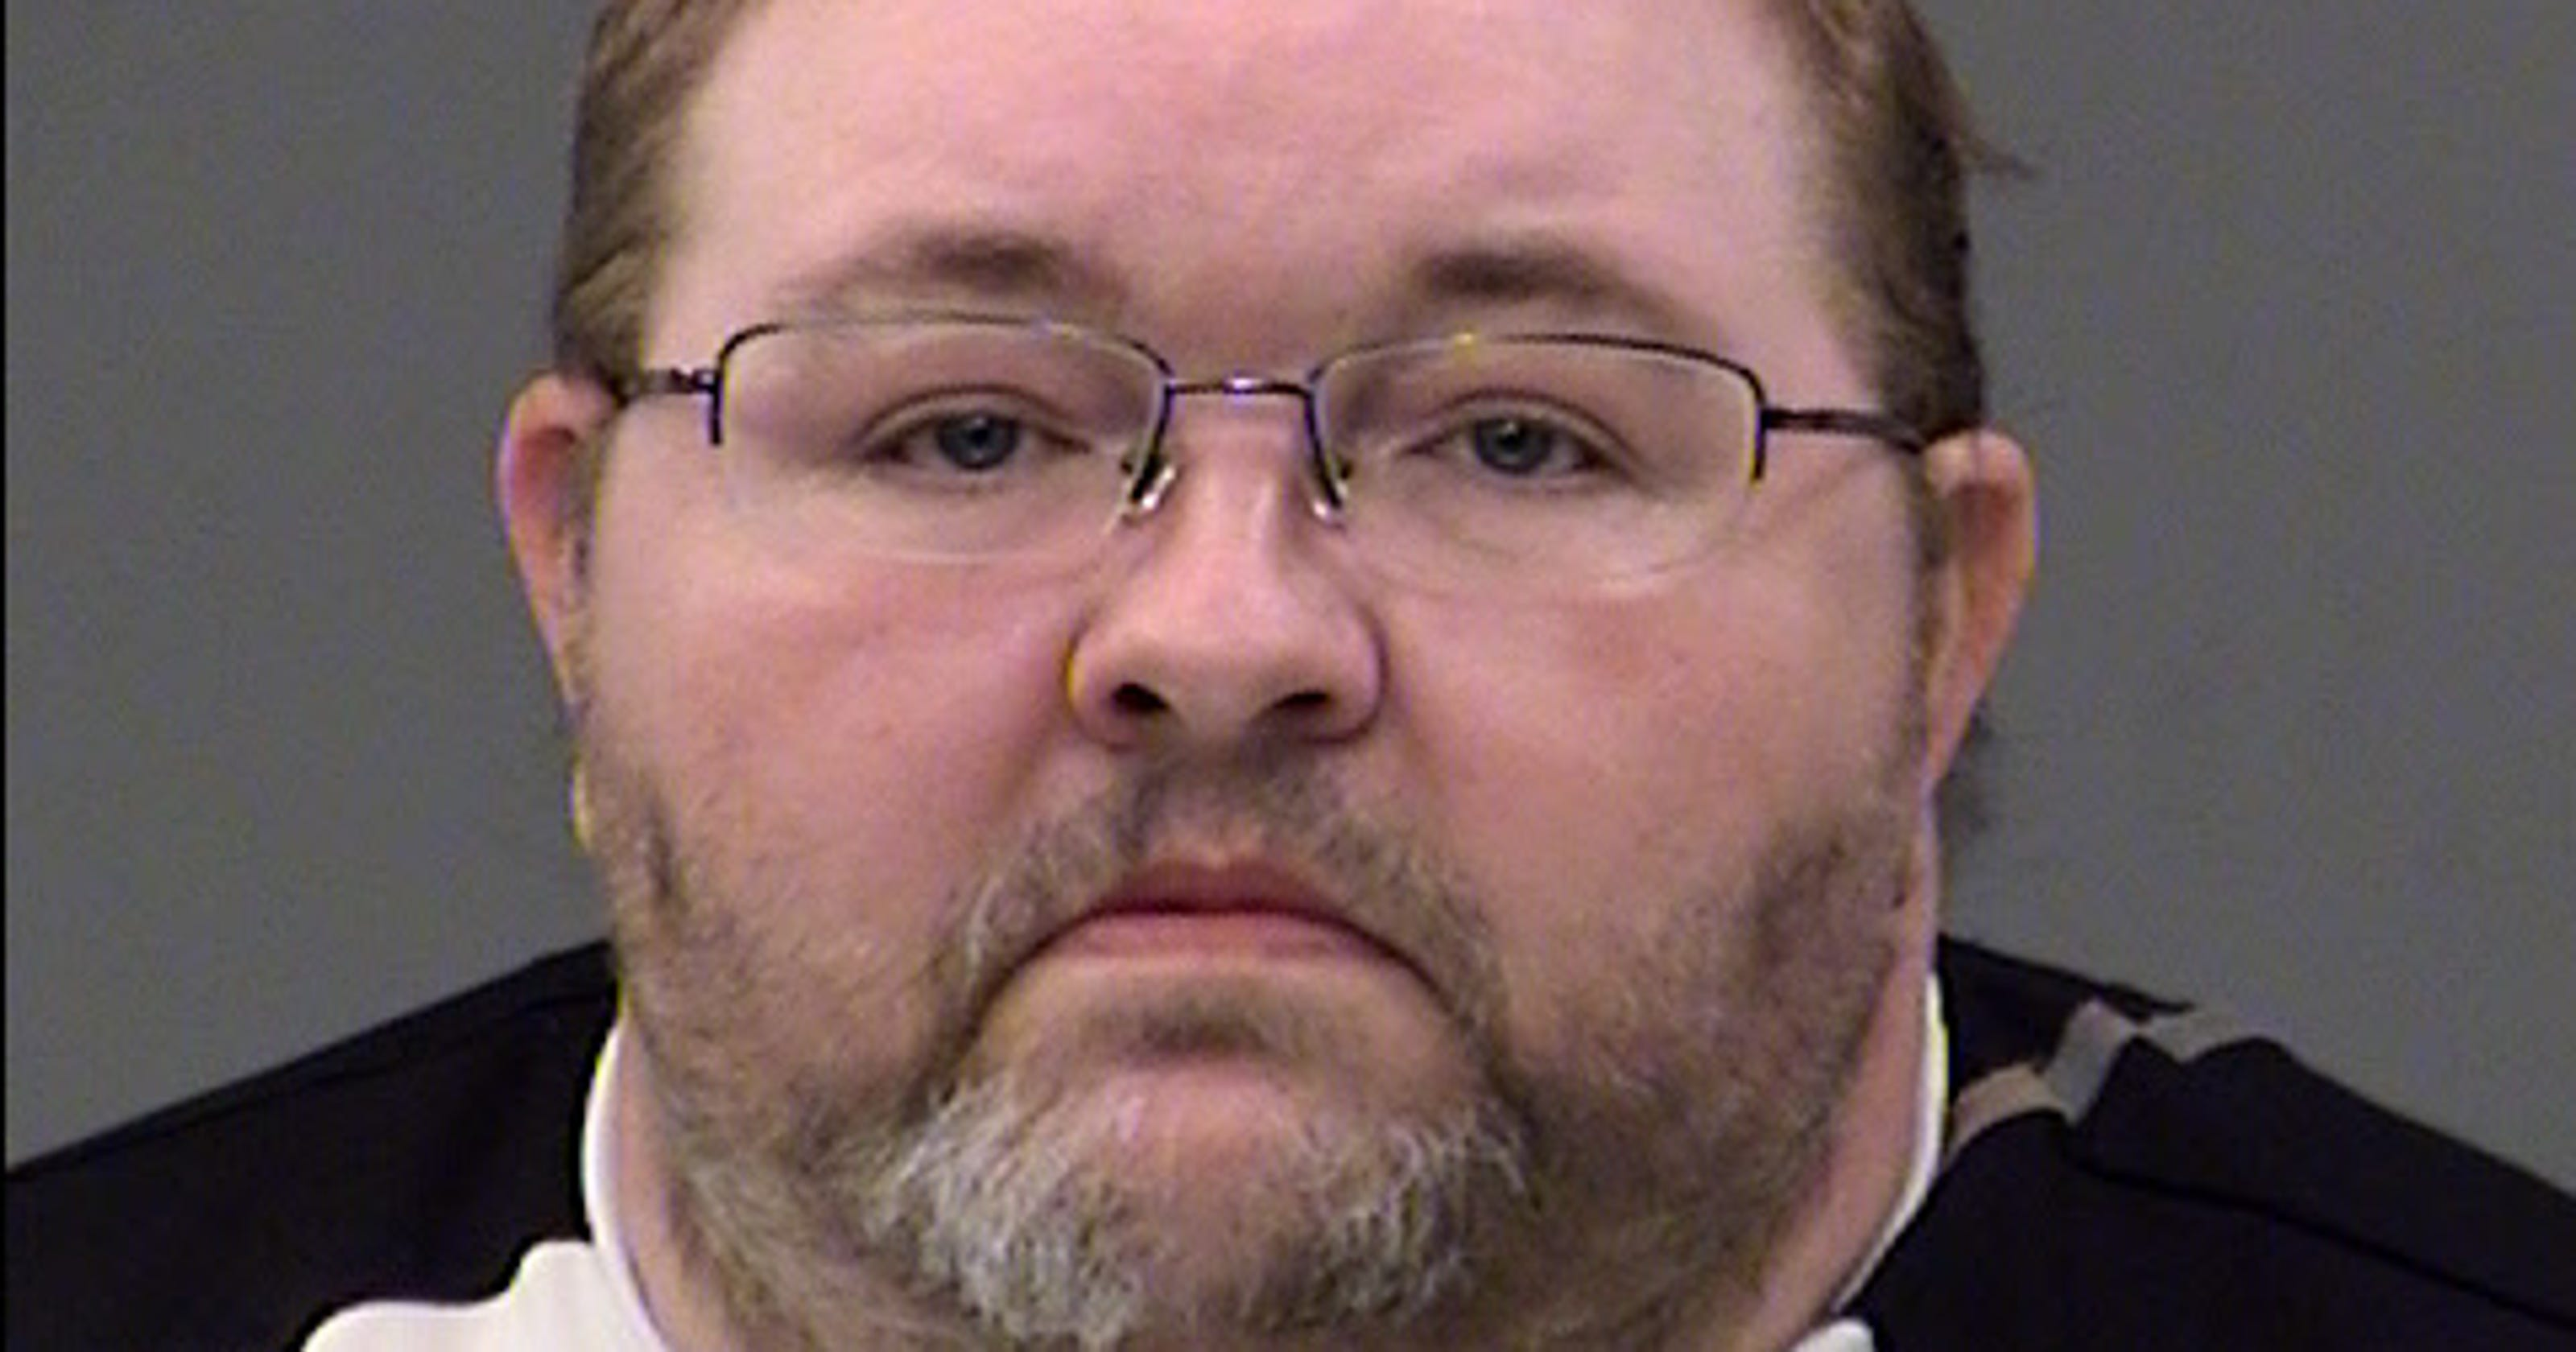 Indianapolis man kept dead body in tub for 6 days, docs say